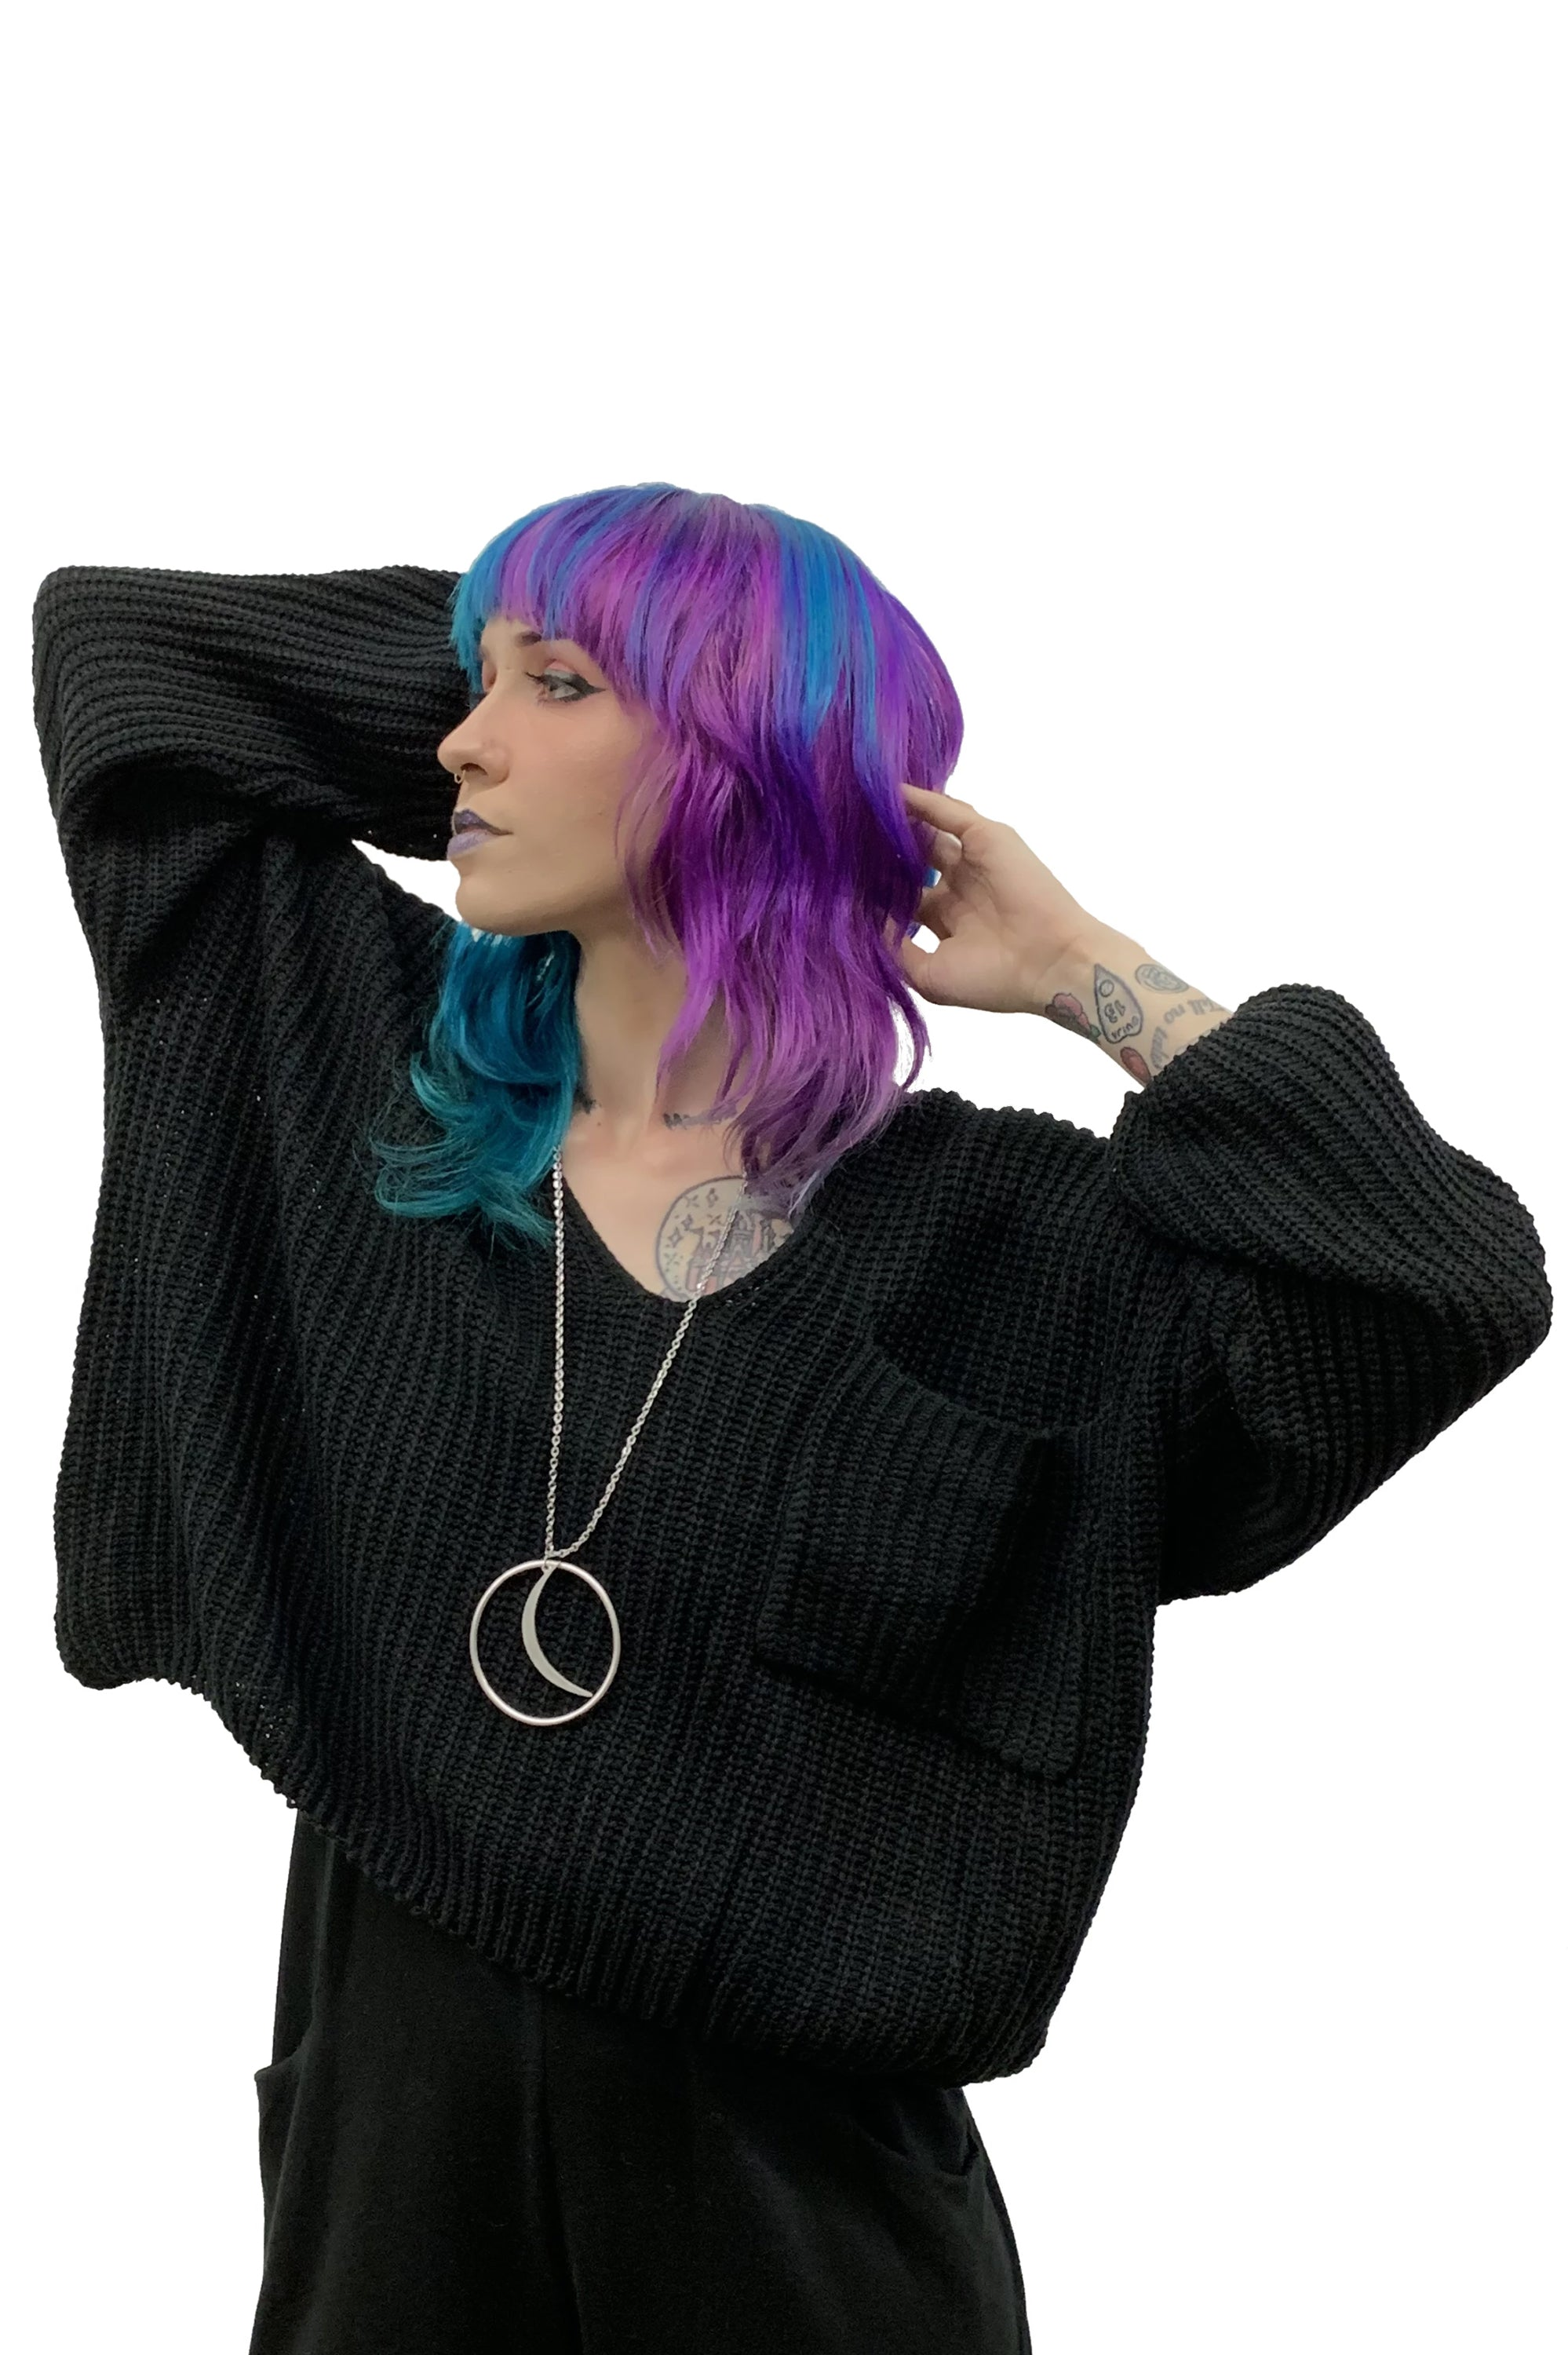 Dylan Oversized Sweater - only S/M left!